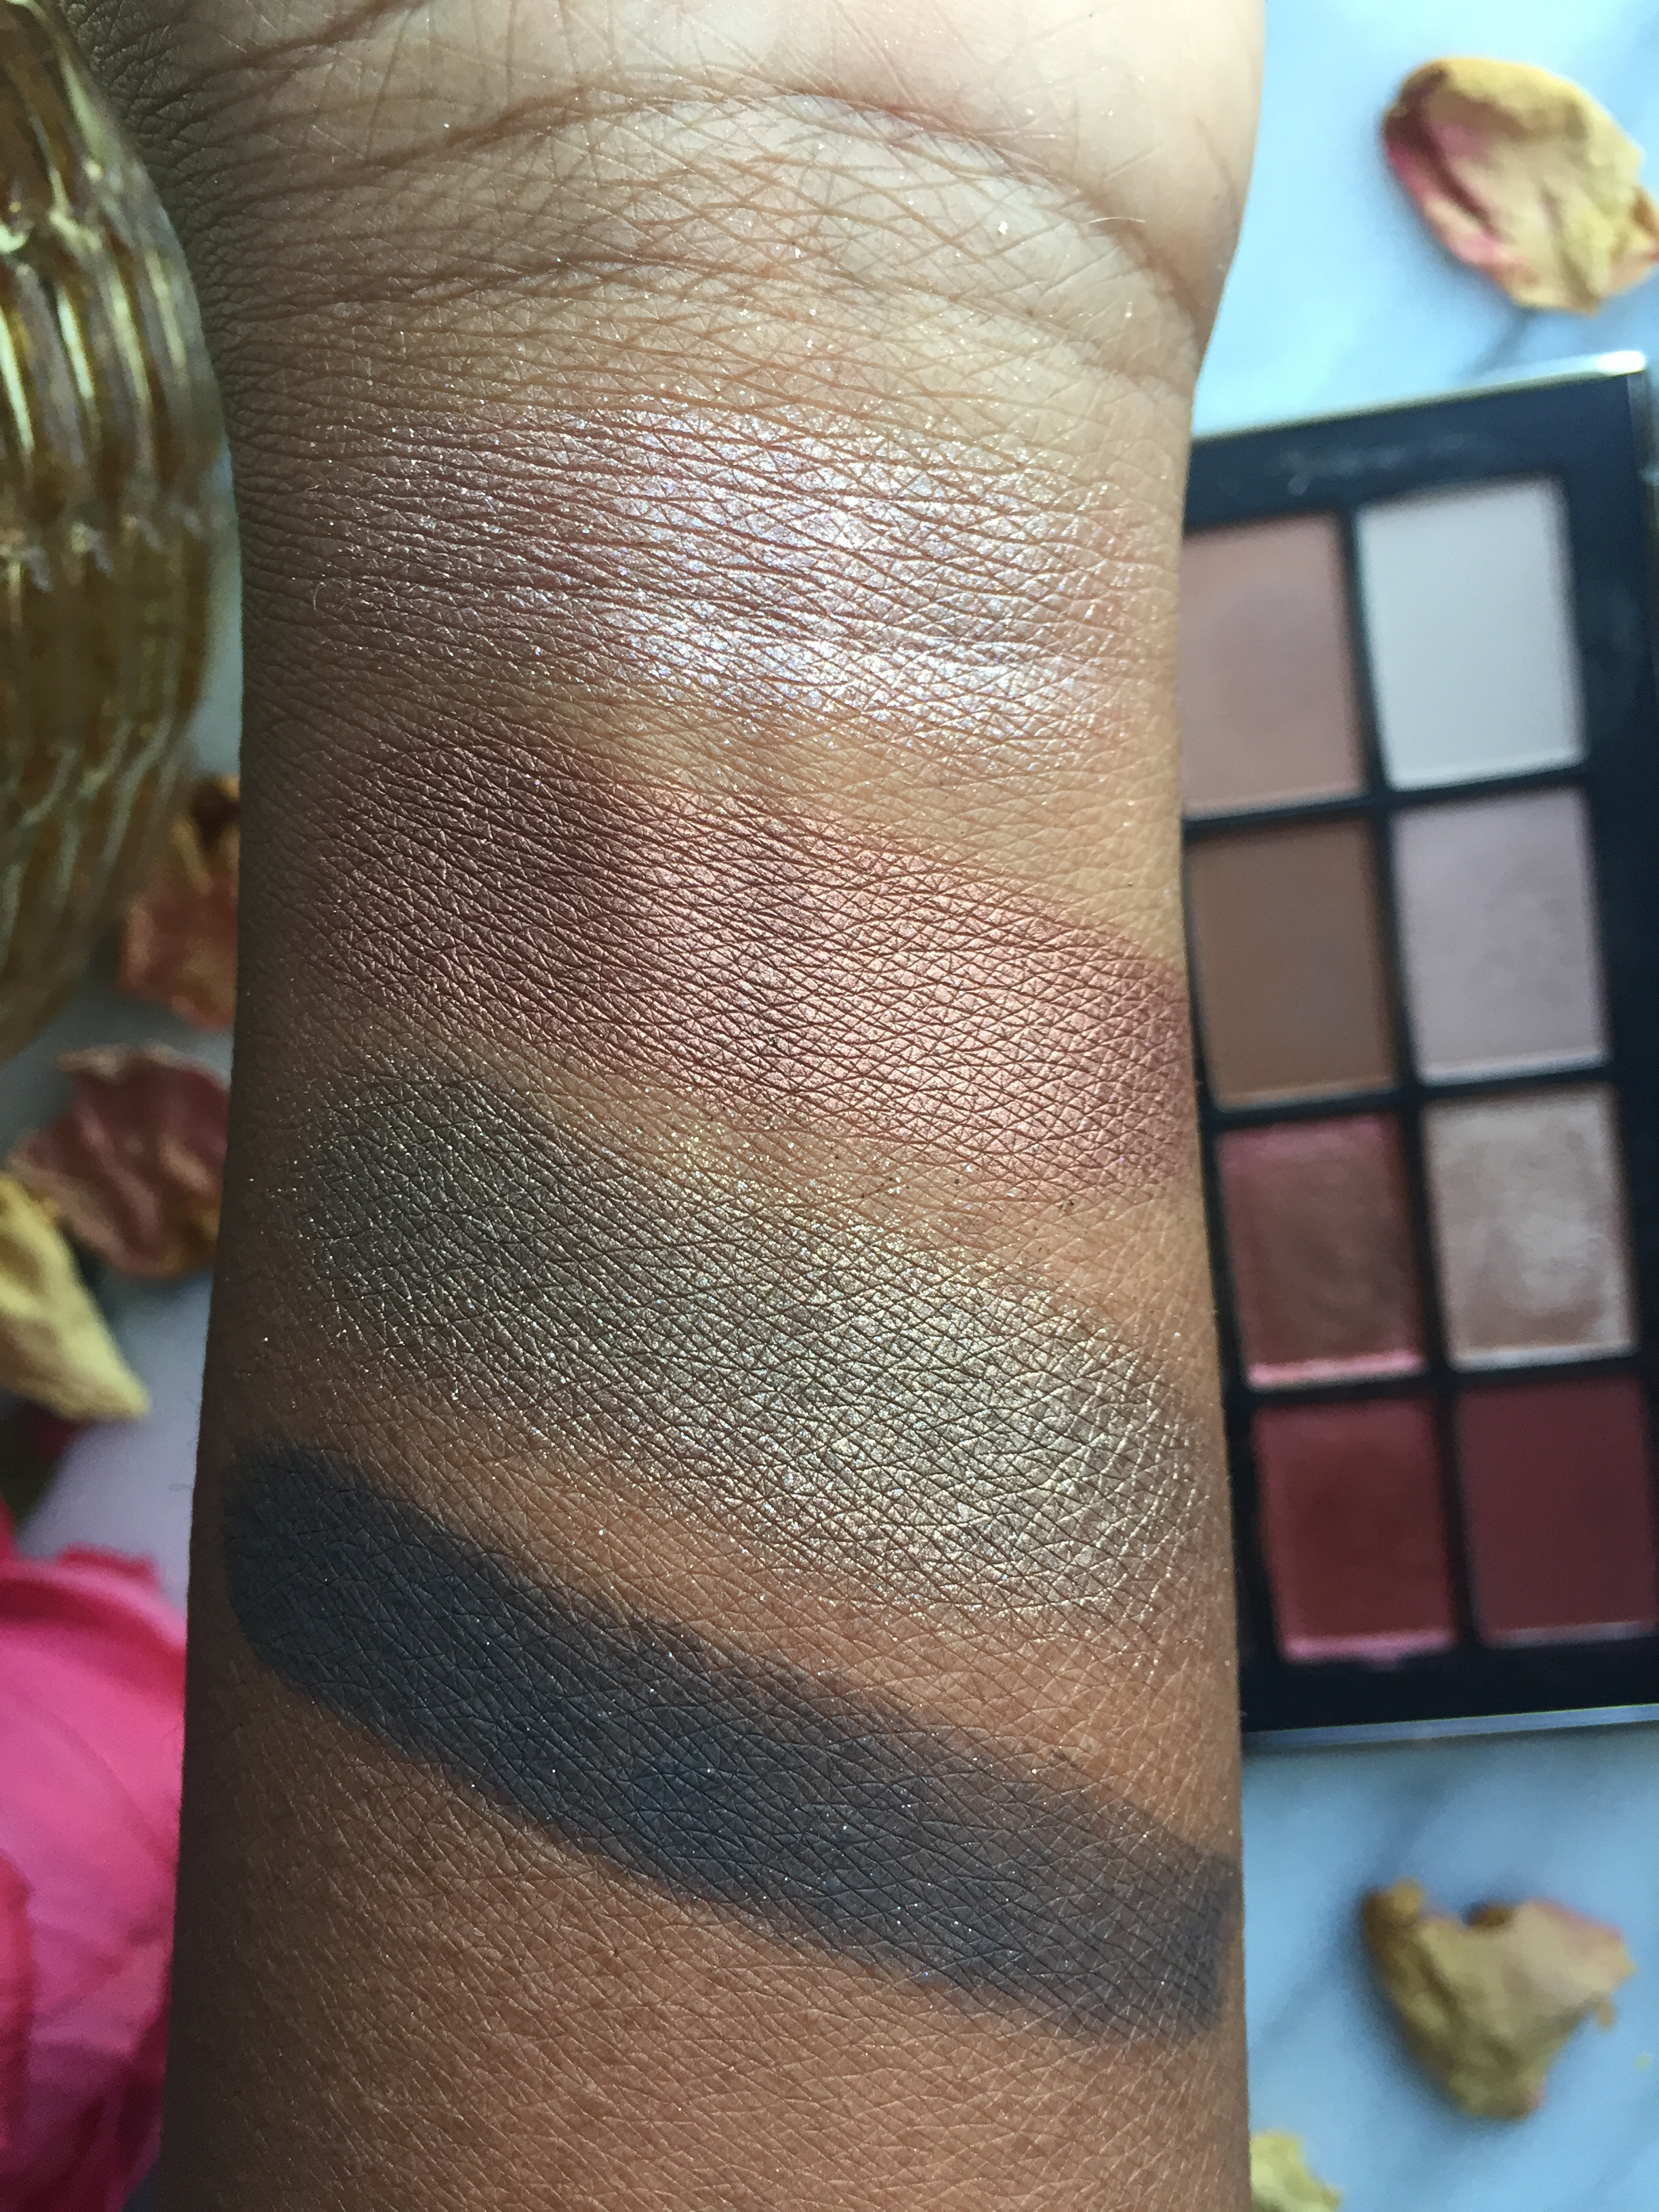 Brush Swatches W/Primer L to R: Coconut Grove, Fallen Star, LaLa, Shooting Star